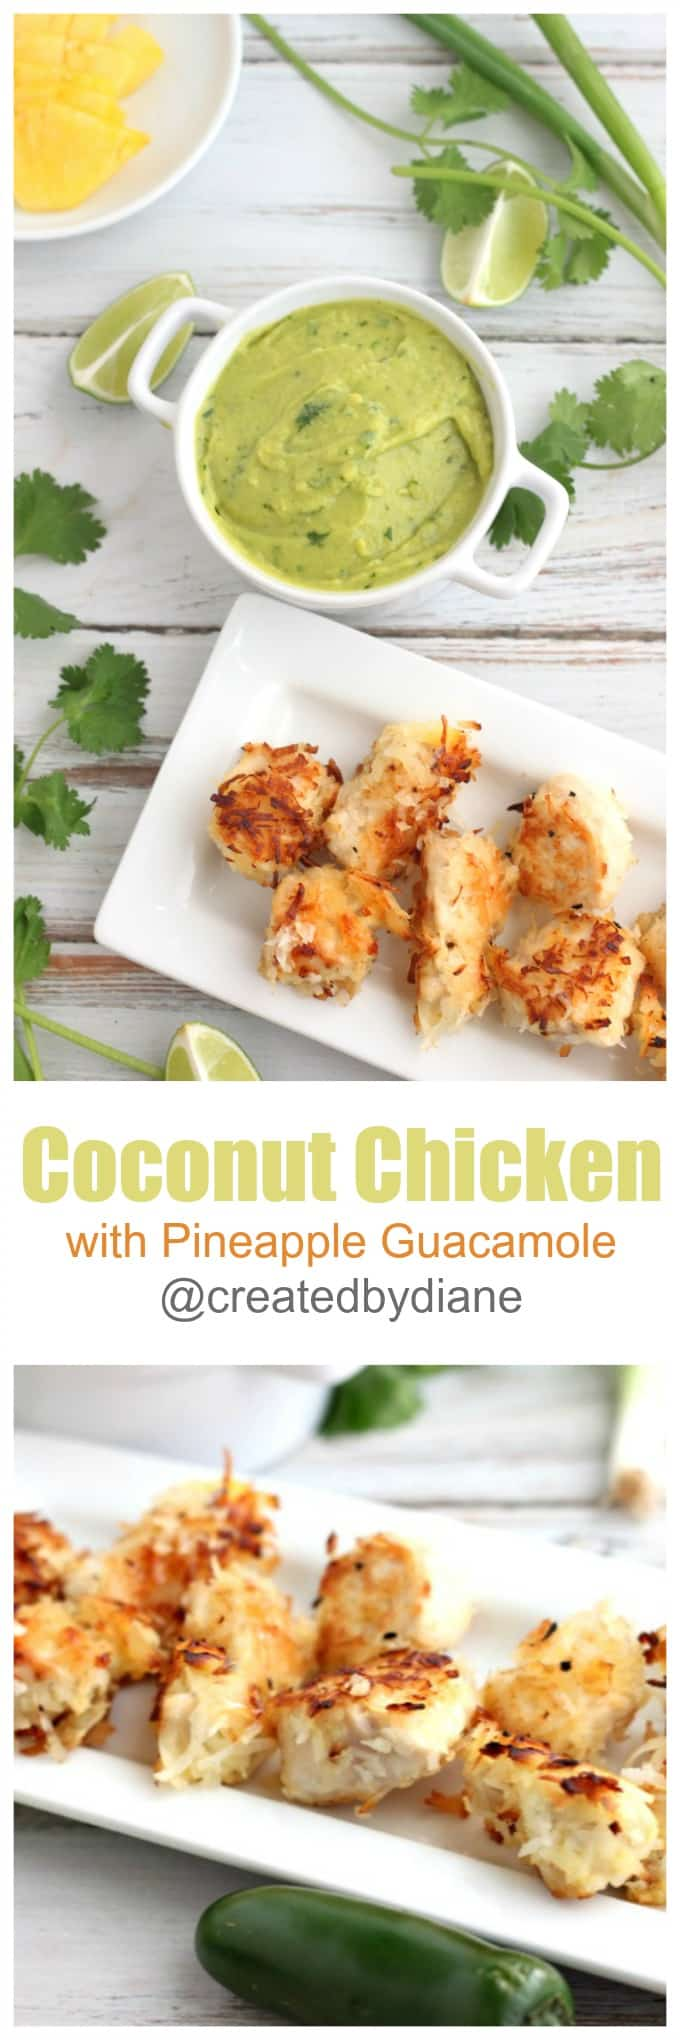 coconut chicken with pineapple guacamole @createdbydiane